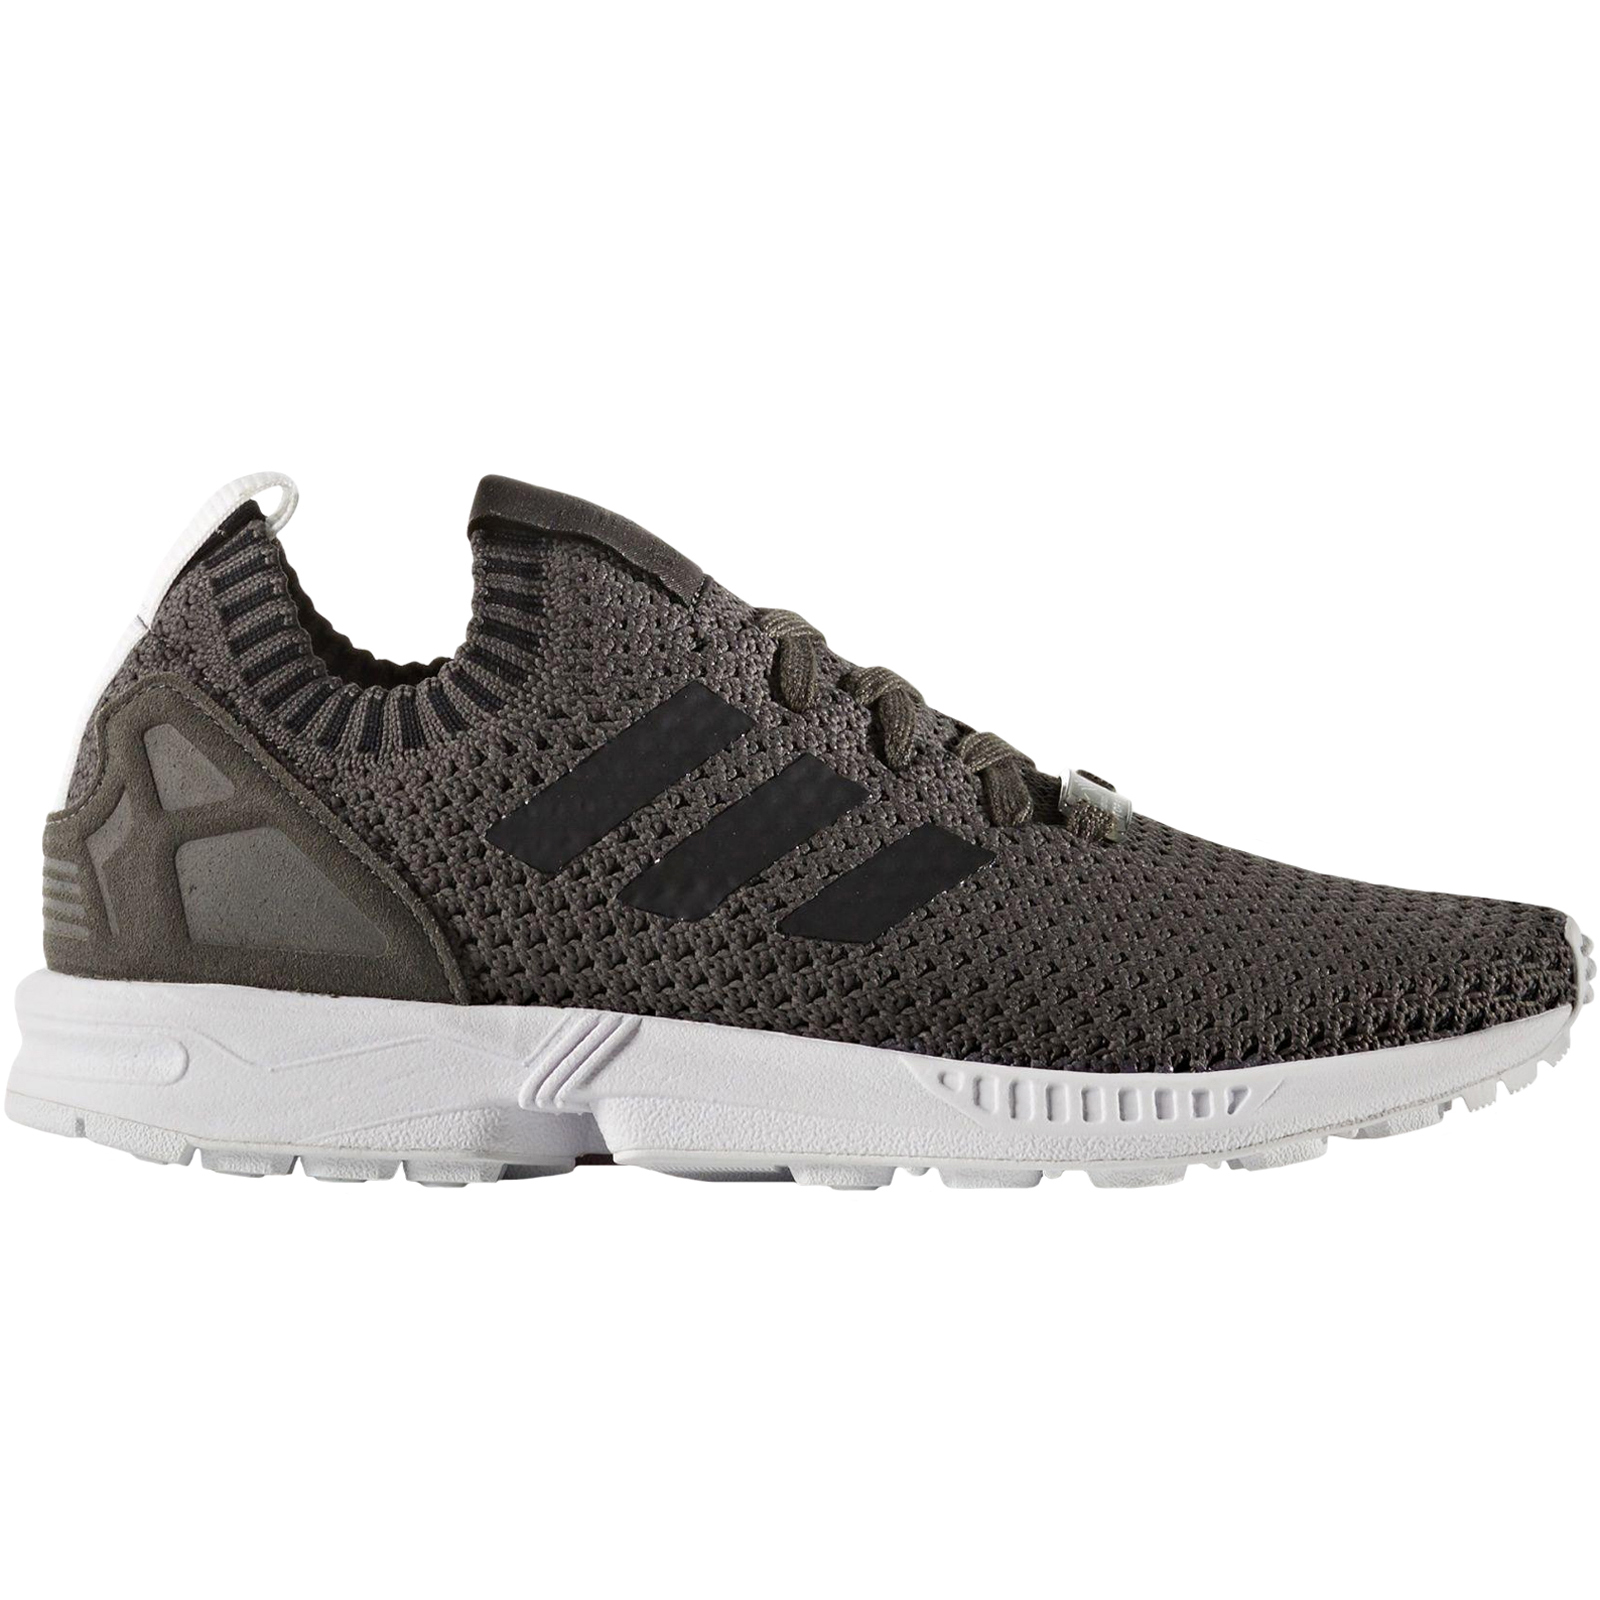 328cf133b7ea89 Details about adidas Originals Womens ZX Flux Primeknit Running Lace Up  Trainers Shoes - Grey